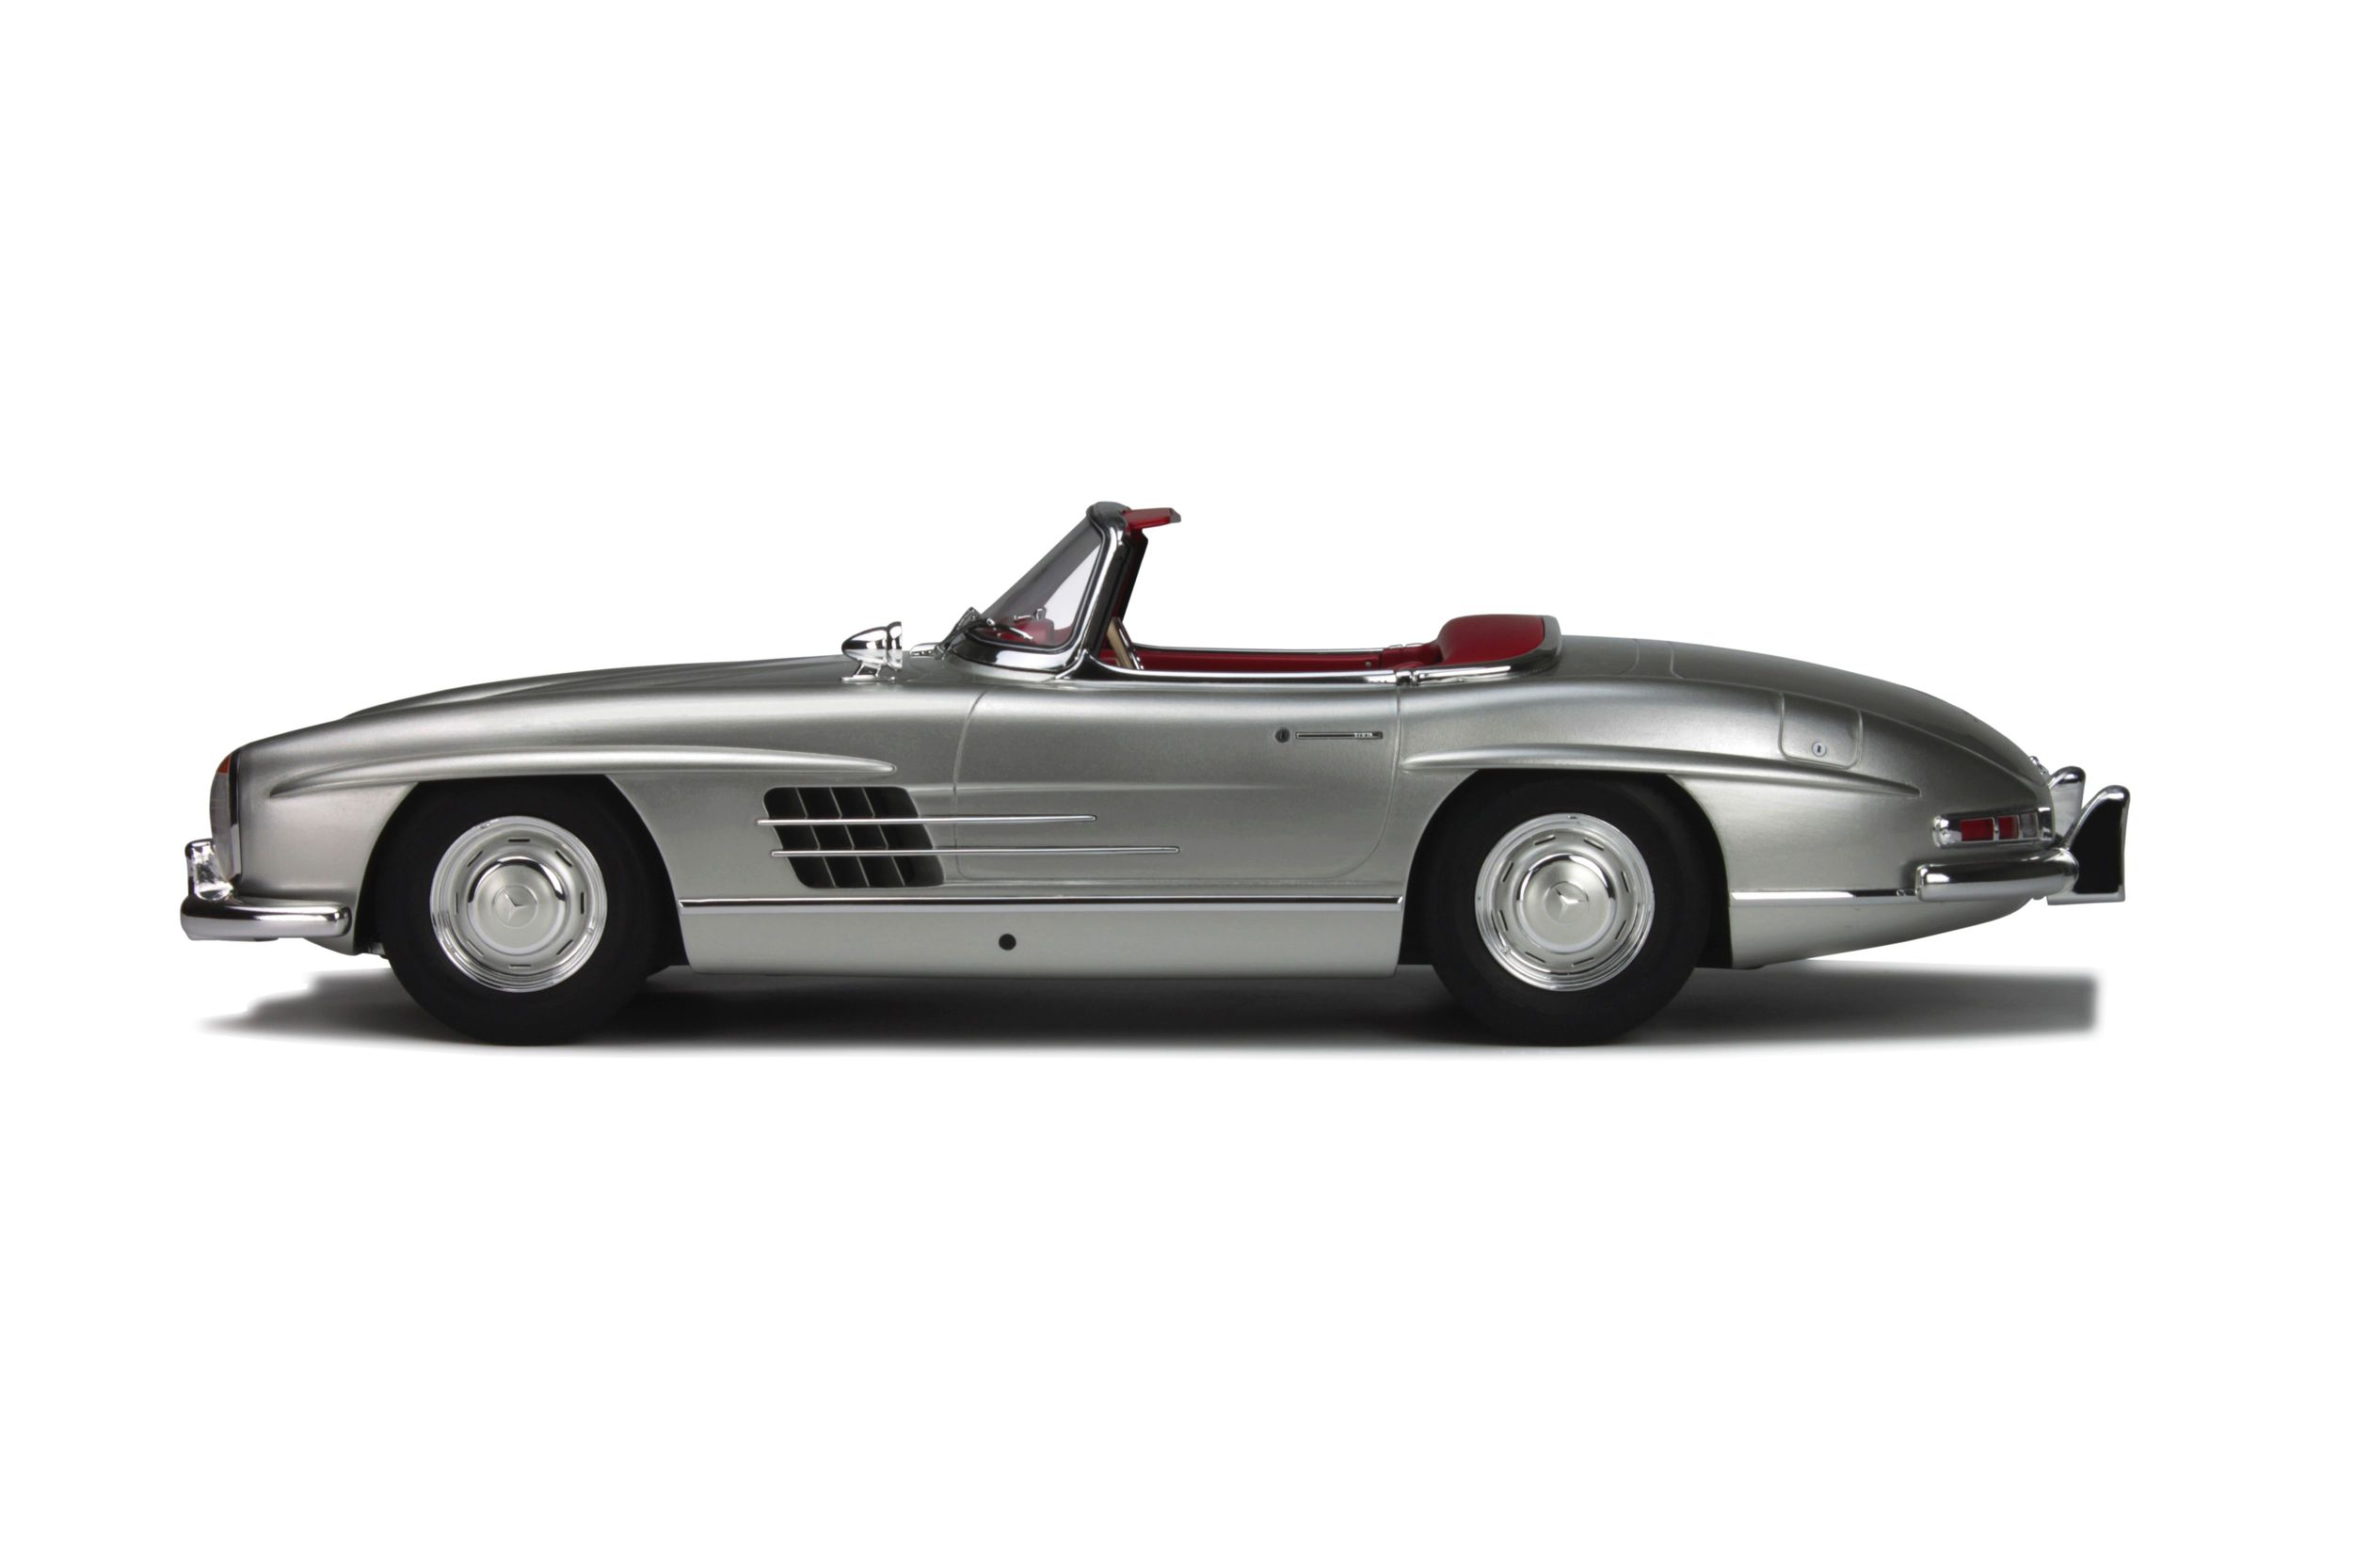 mercedes benz 300 sl roadster model car collection gt spirit. Black Bedroom Furniture Sets. Home Design Ideas